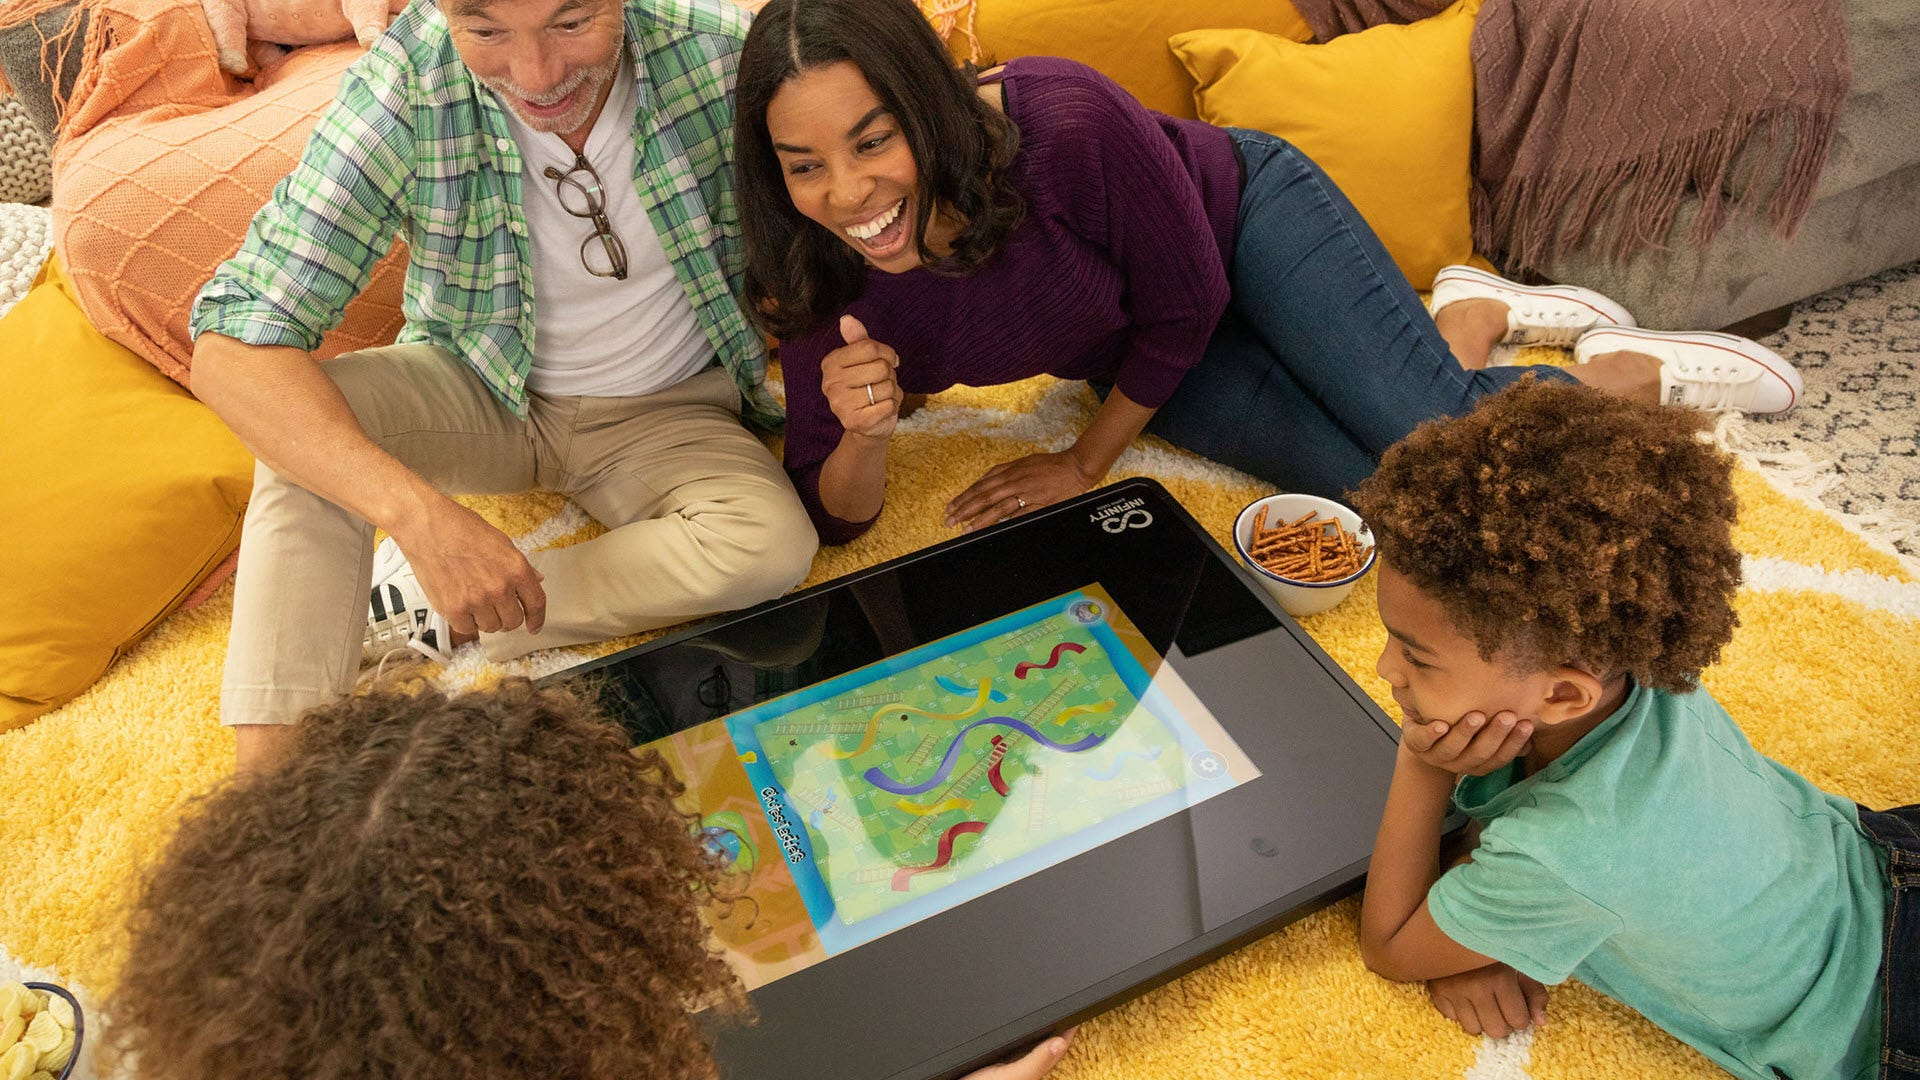 Four people playing a game of 'Chutes and Ladders' on the floor with a digital board game table.